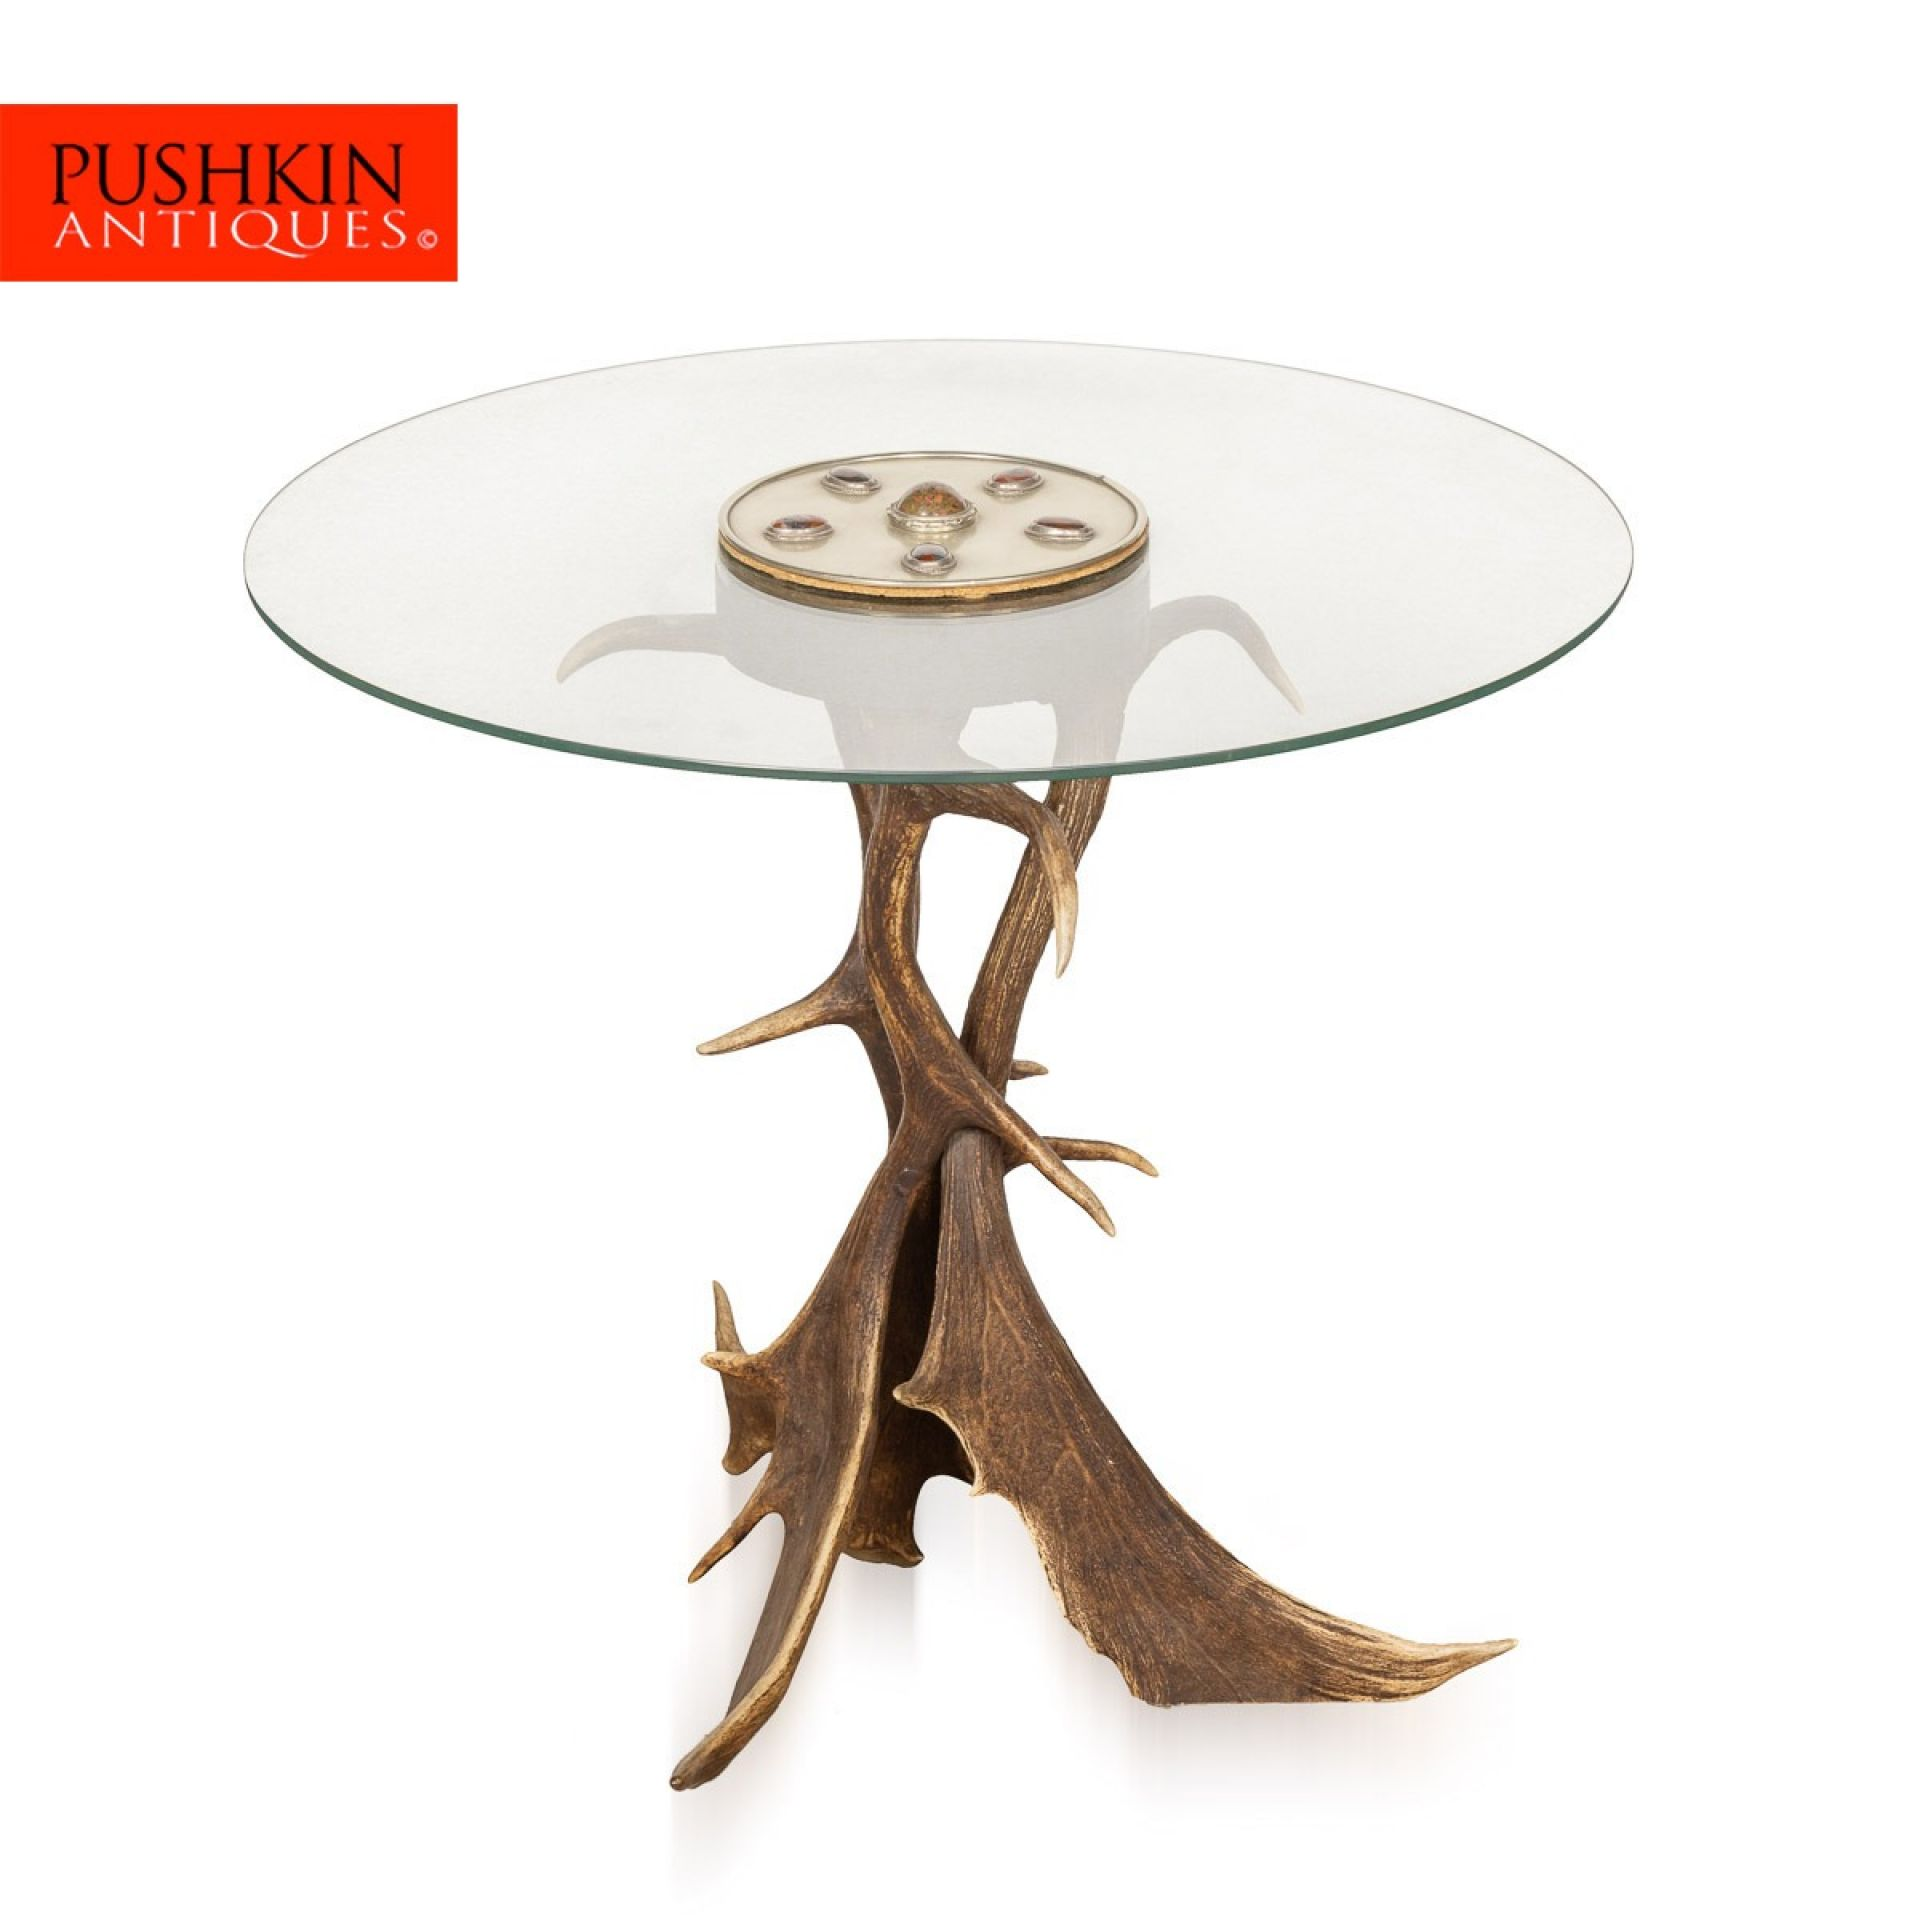 UNUSUAL ANTLER HORN SIDE TABLE BY ANTHONY REDMILE, LONDON c.1970